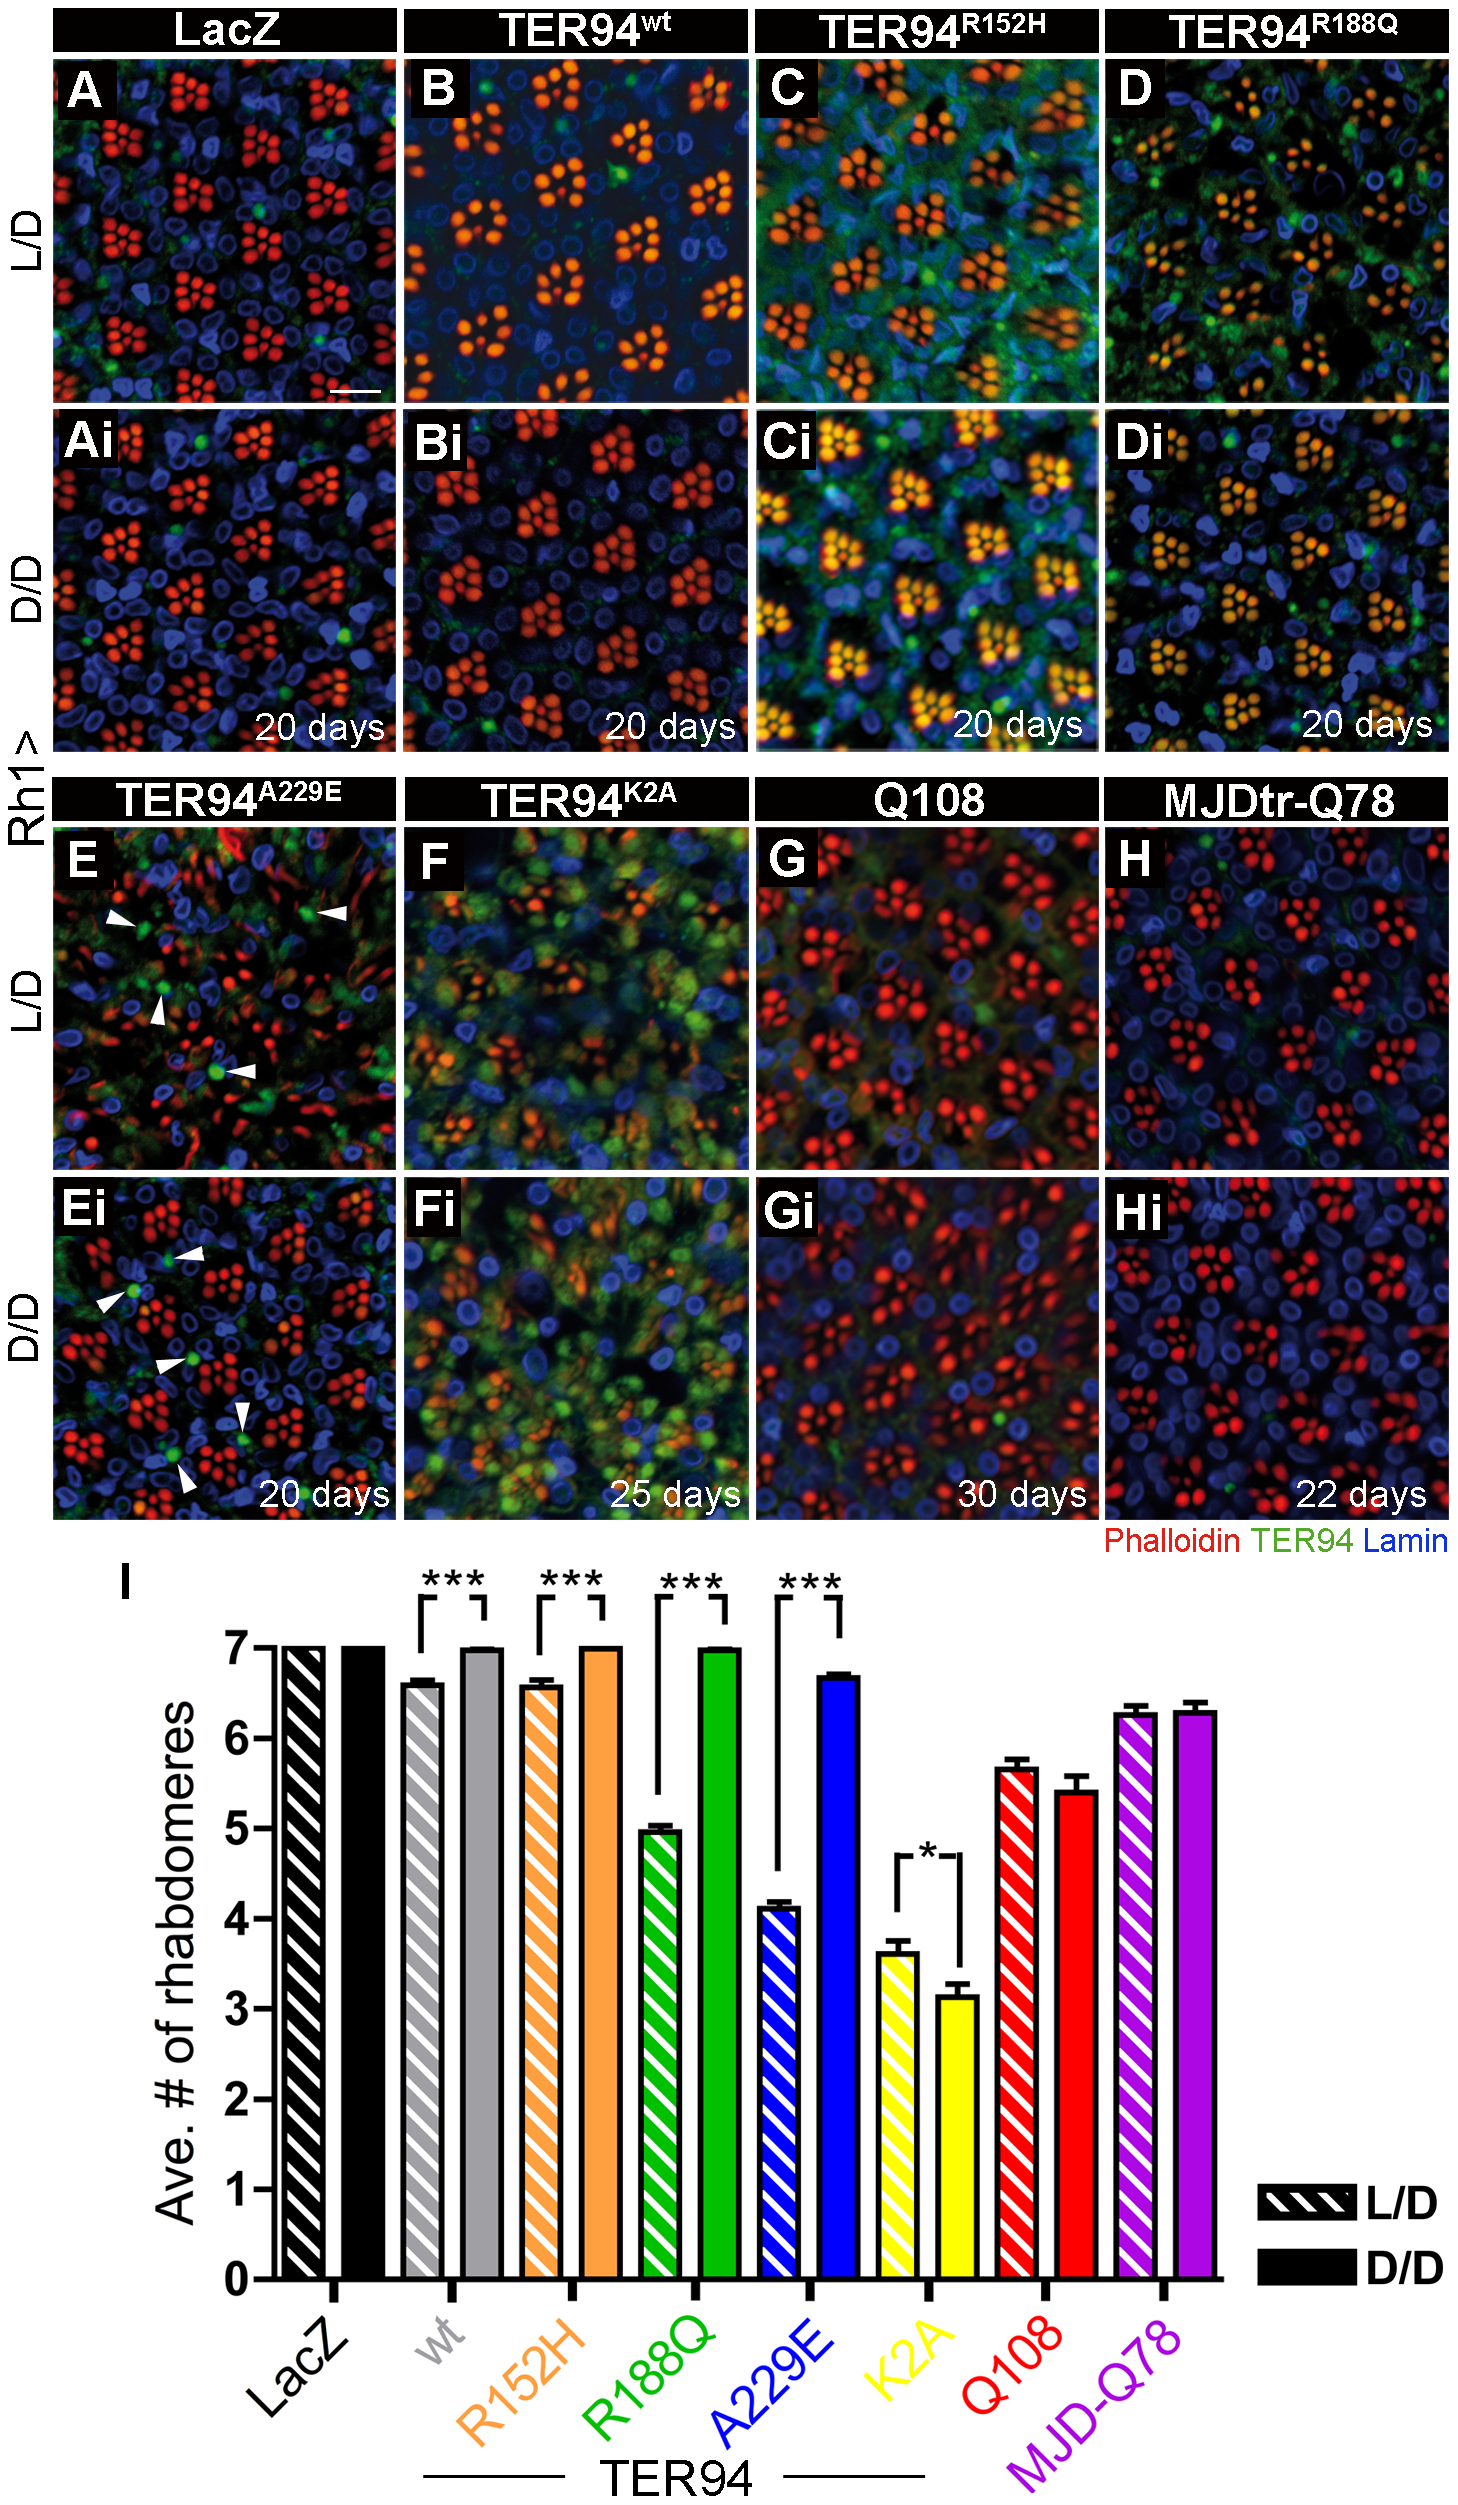 Neurodegeneration induced by pathogenic TER94 mutants can be suppressed under dark conditions.